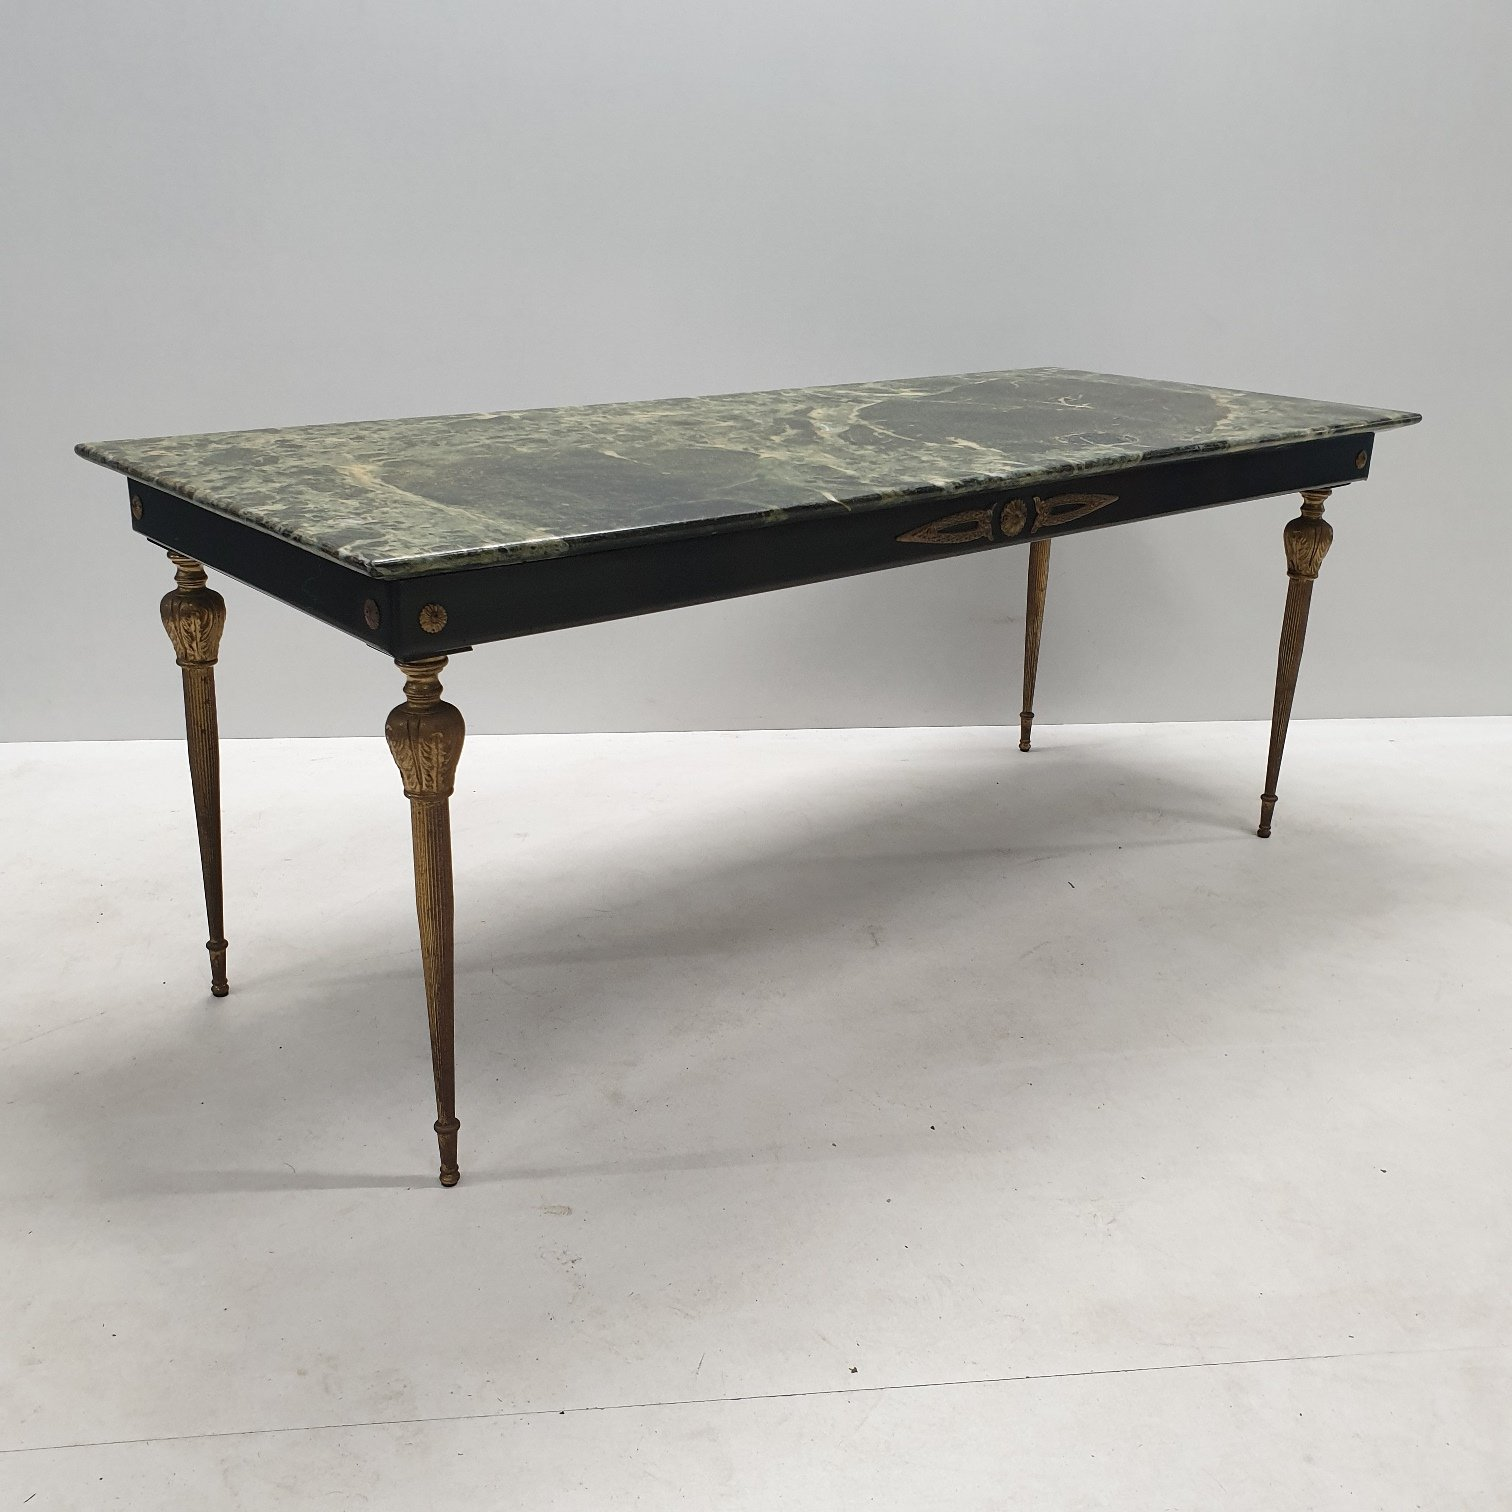 Vintage Brass Coffee Table With A Green Marble Top 97276